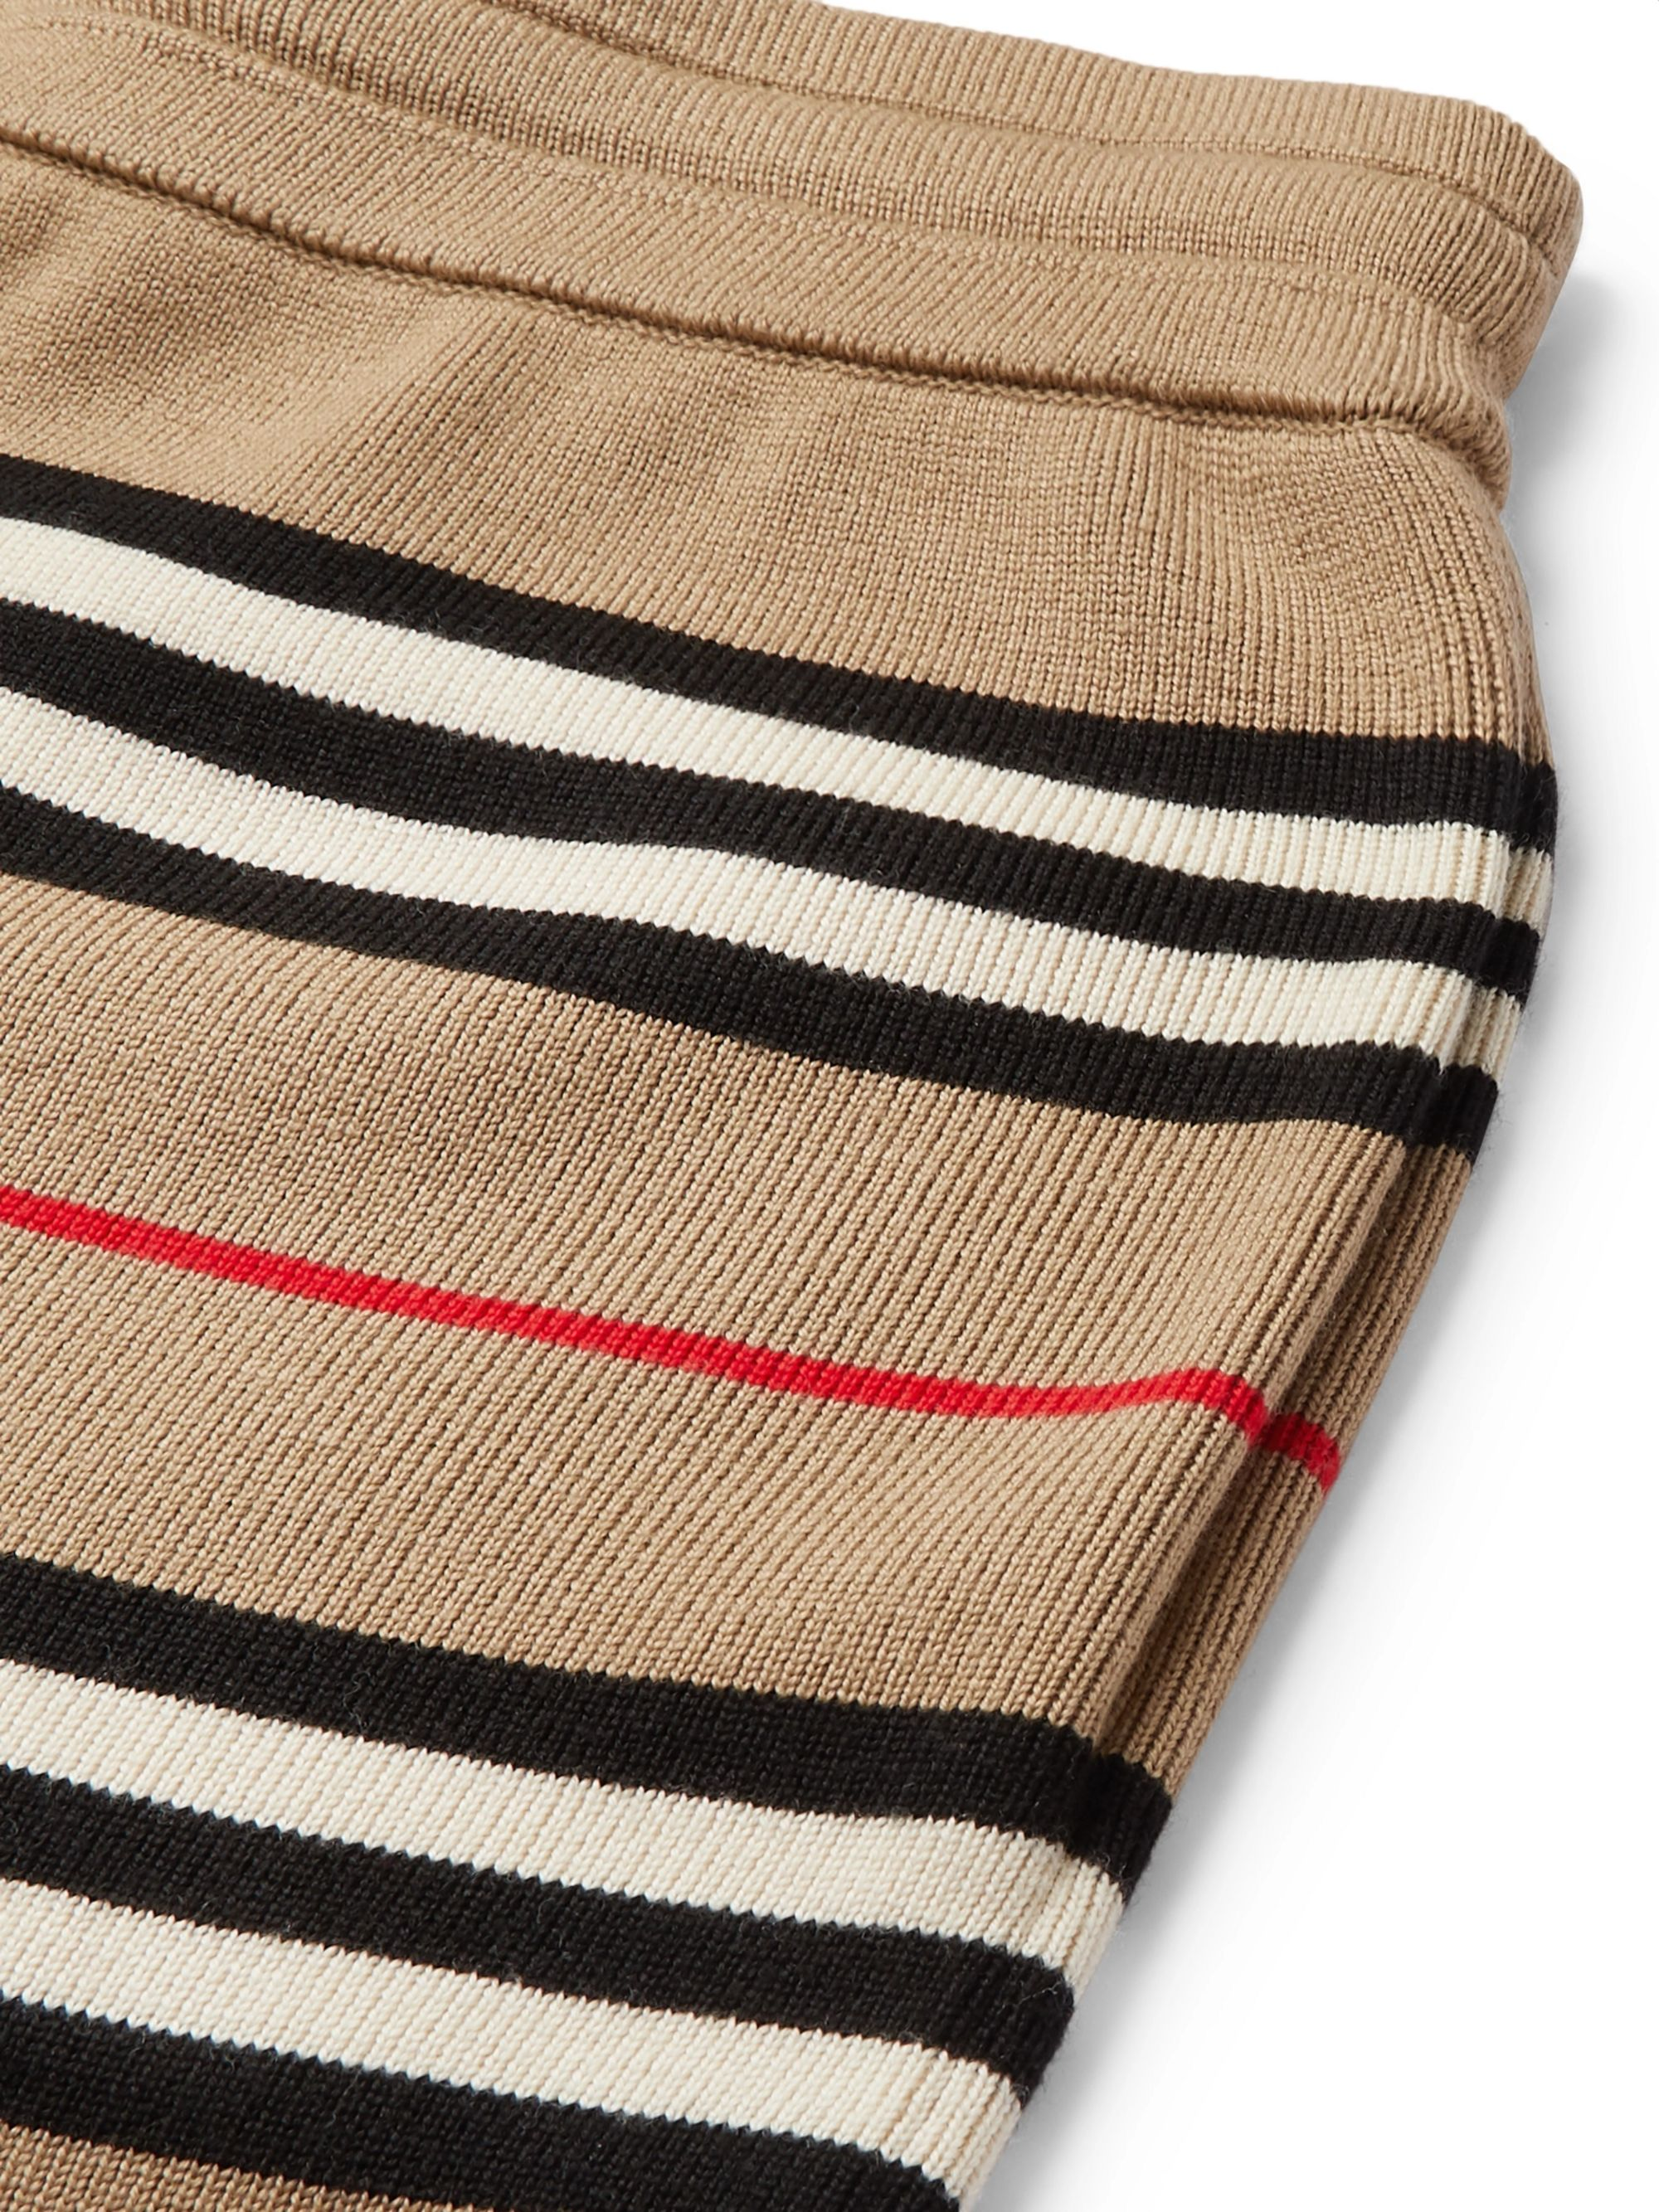 Burberry Striped Merino Wool Drawstring Shorts